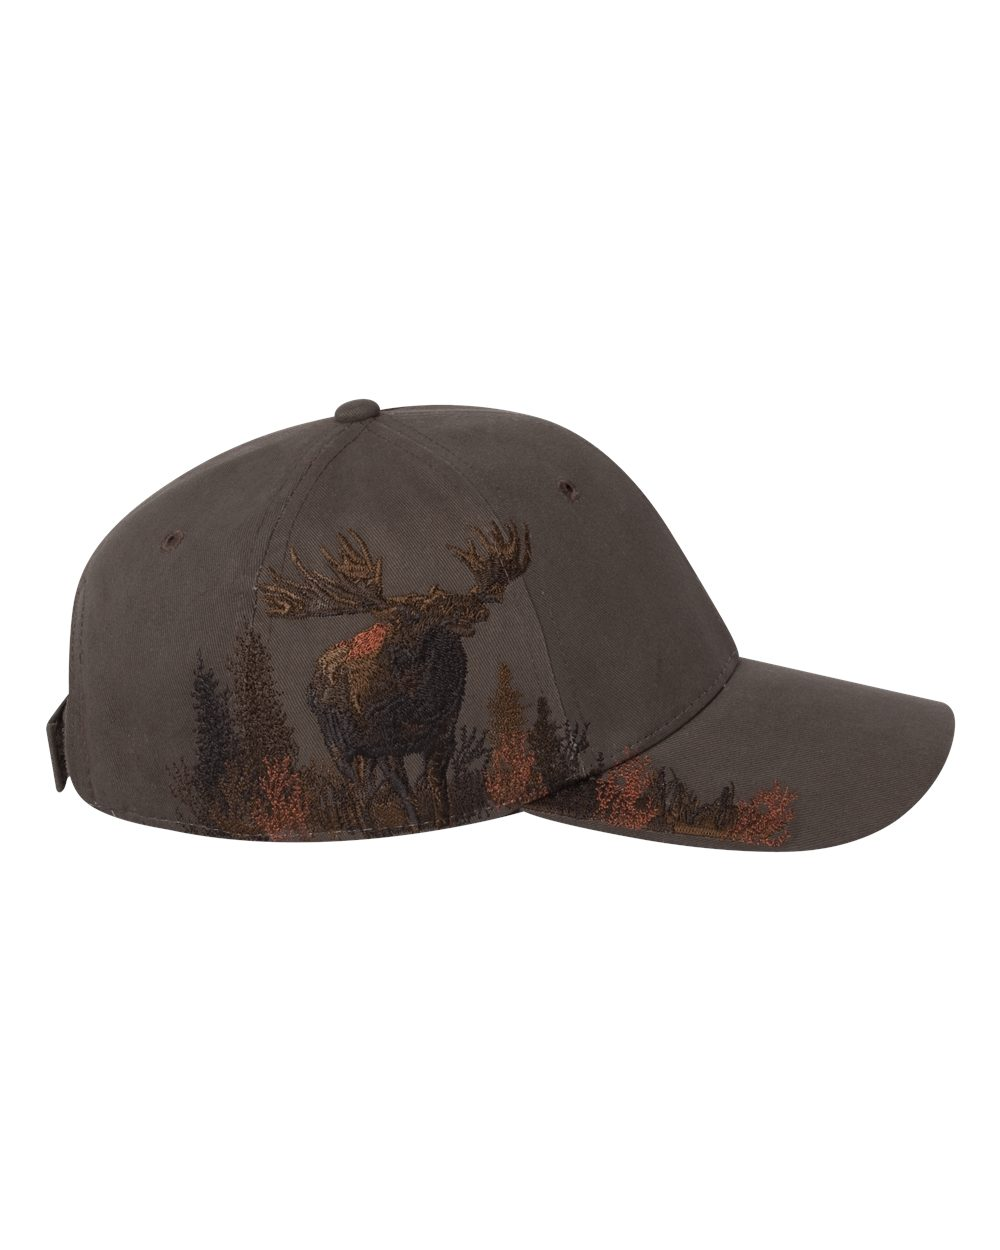 DRI DUCK Wildlife Series Moose Cap - 3295